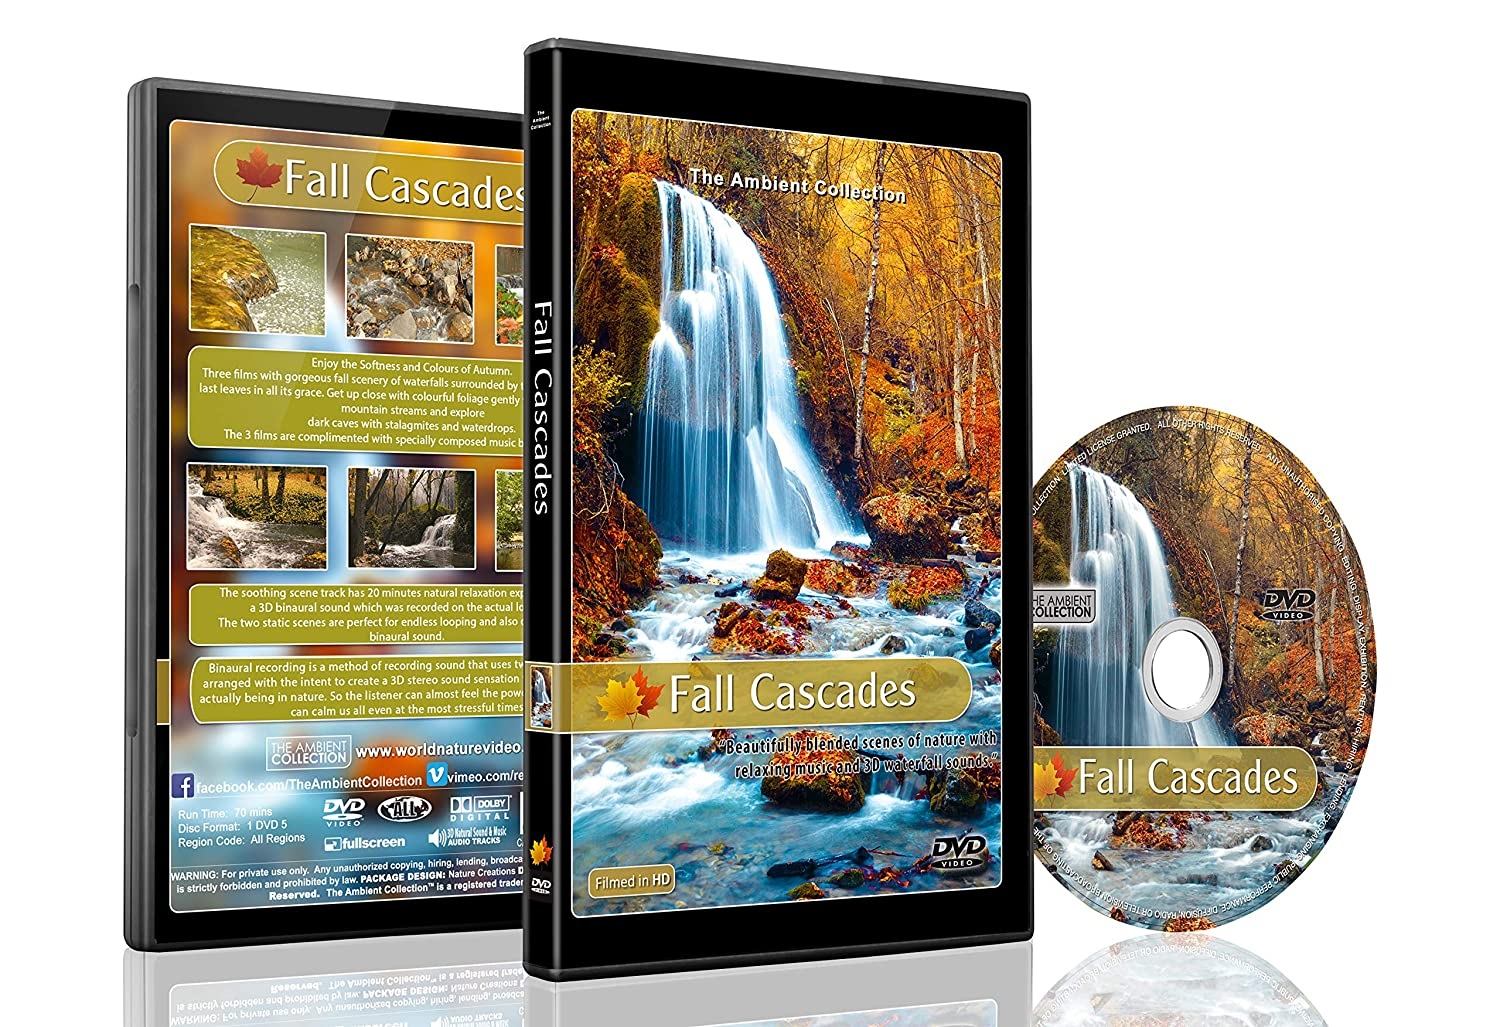 Relaxing Waterfall DVD - Fall Cascades - Soothing Softness and Colours of Autumn with 3D Binaural Water Sound Recording for a Natural Relaxation Experience and Relaxing Piano Music